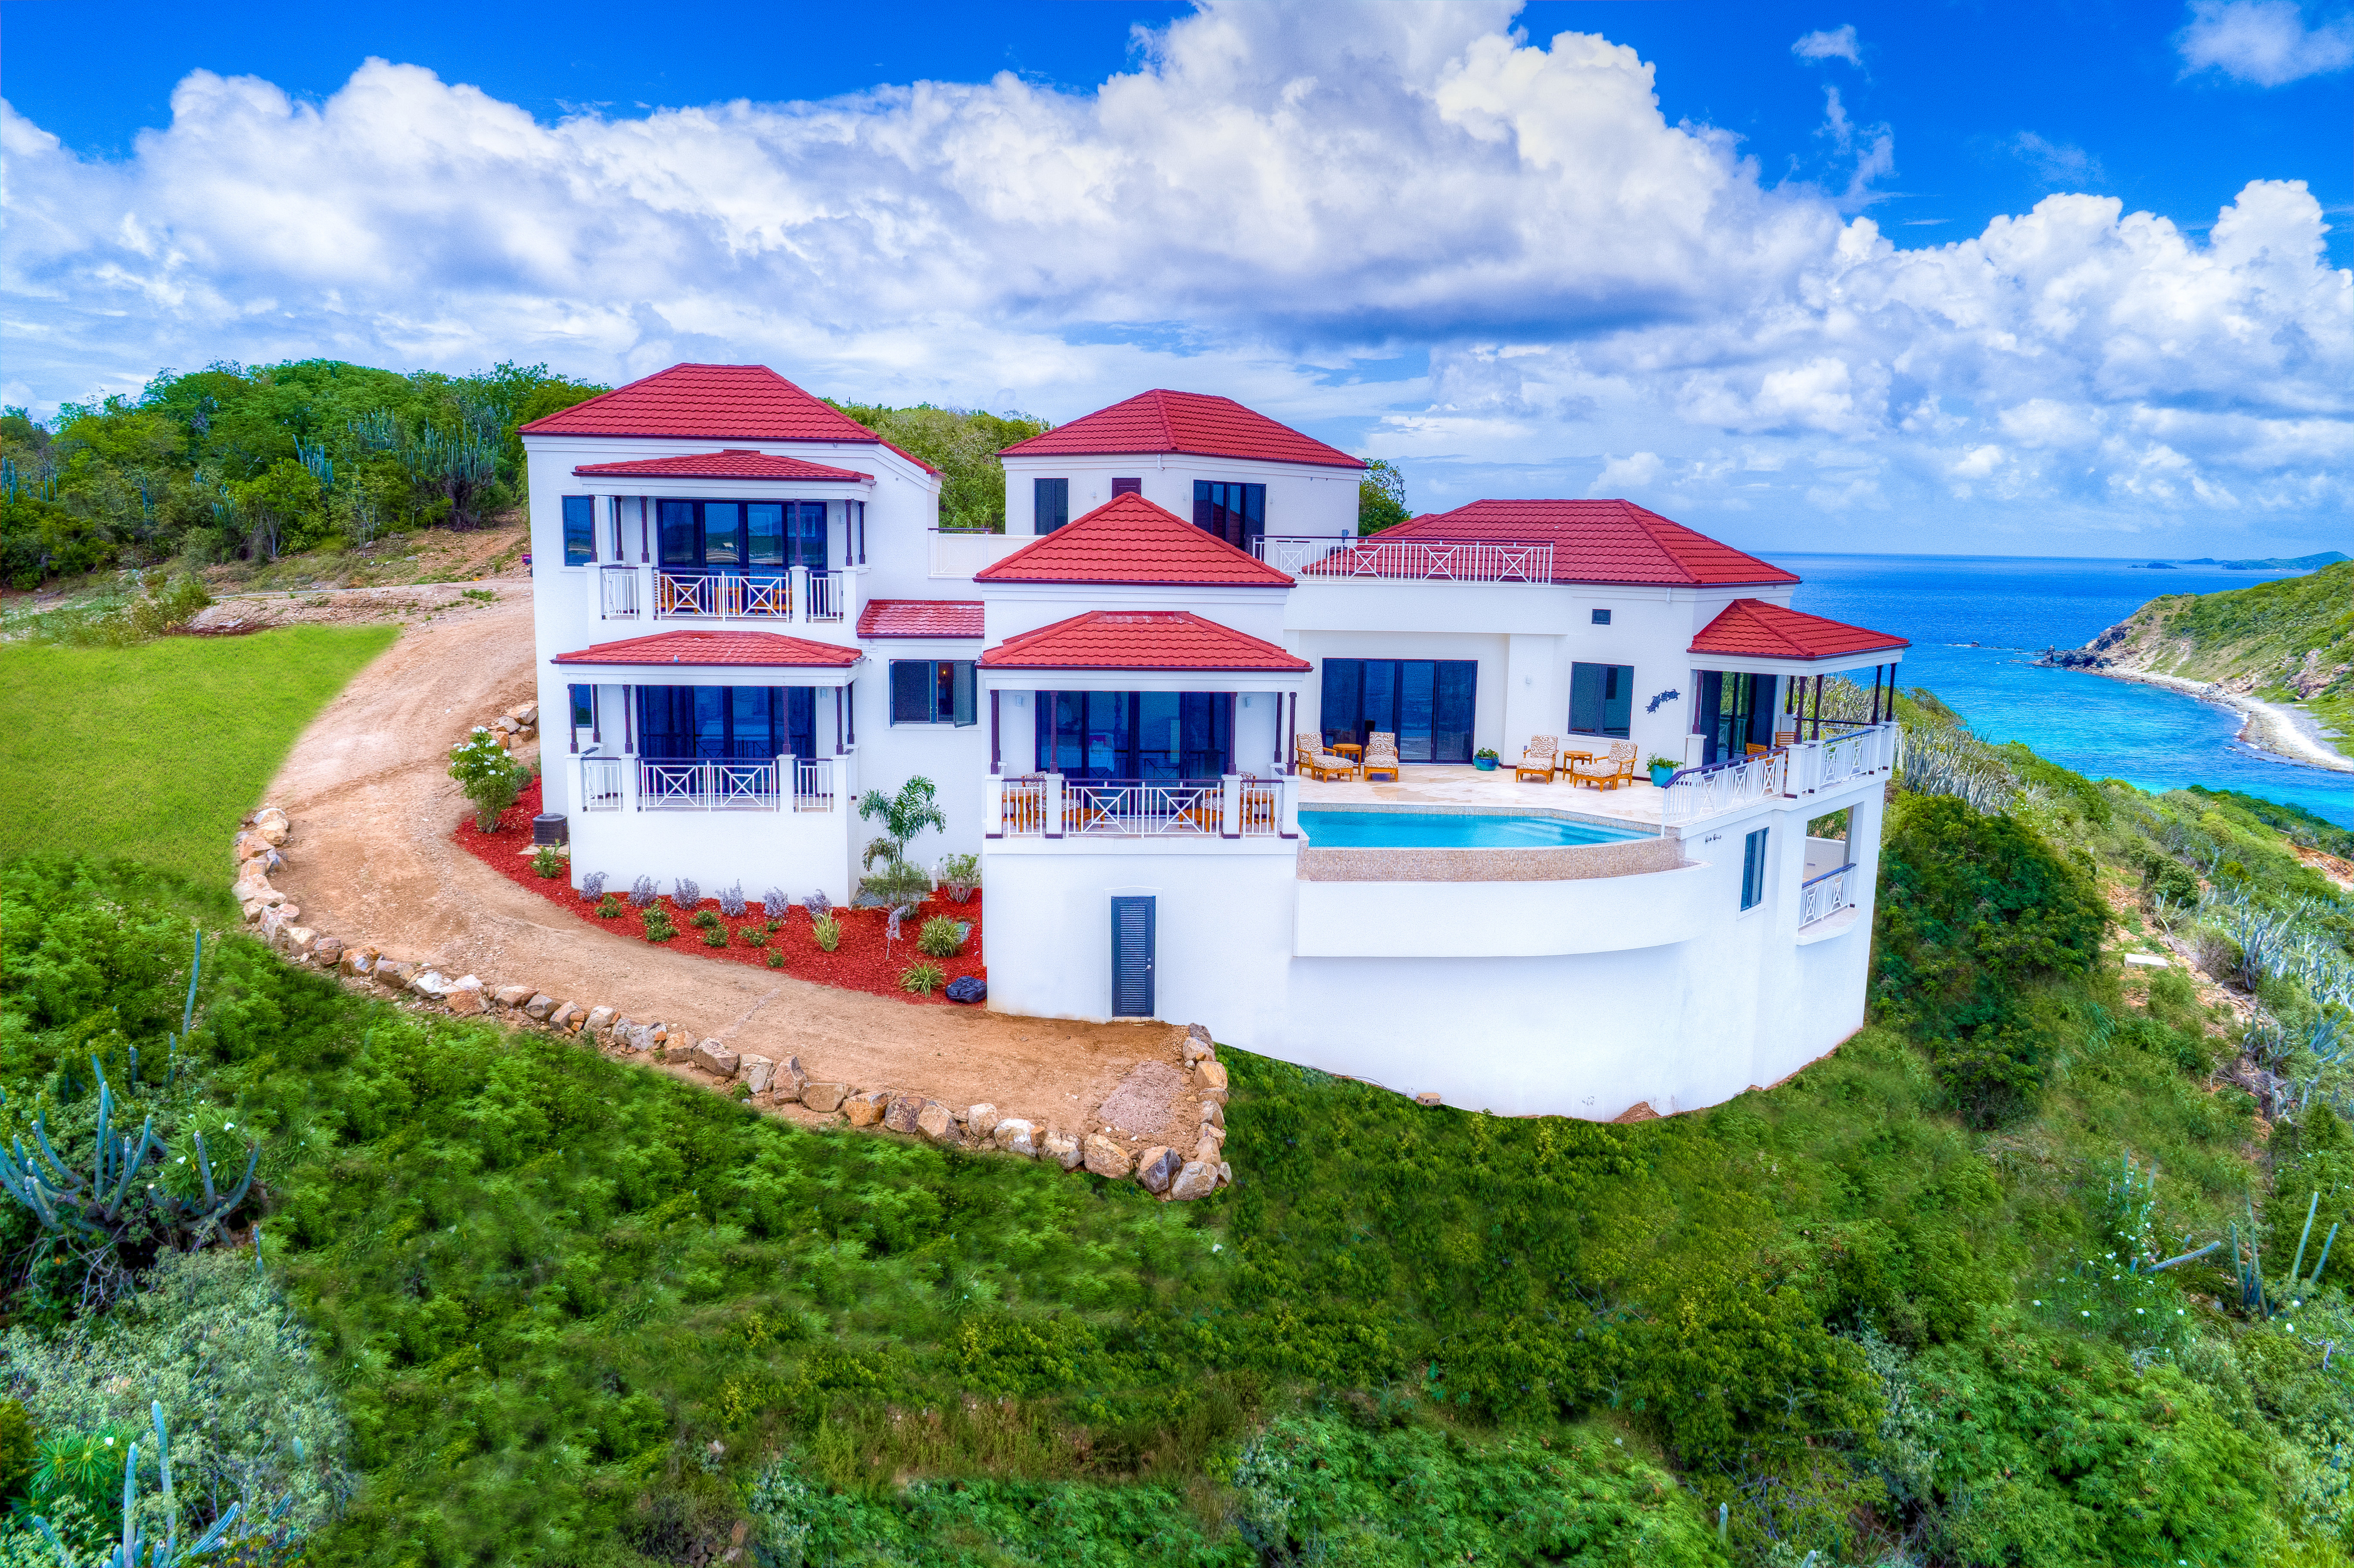 Find Your Dream Home on Scrub Island, BVI